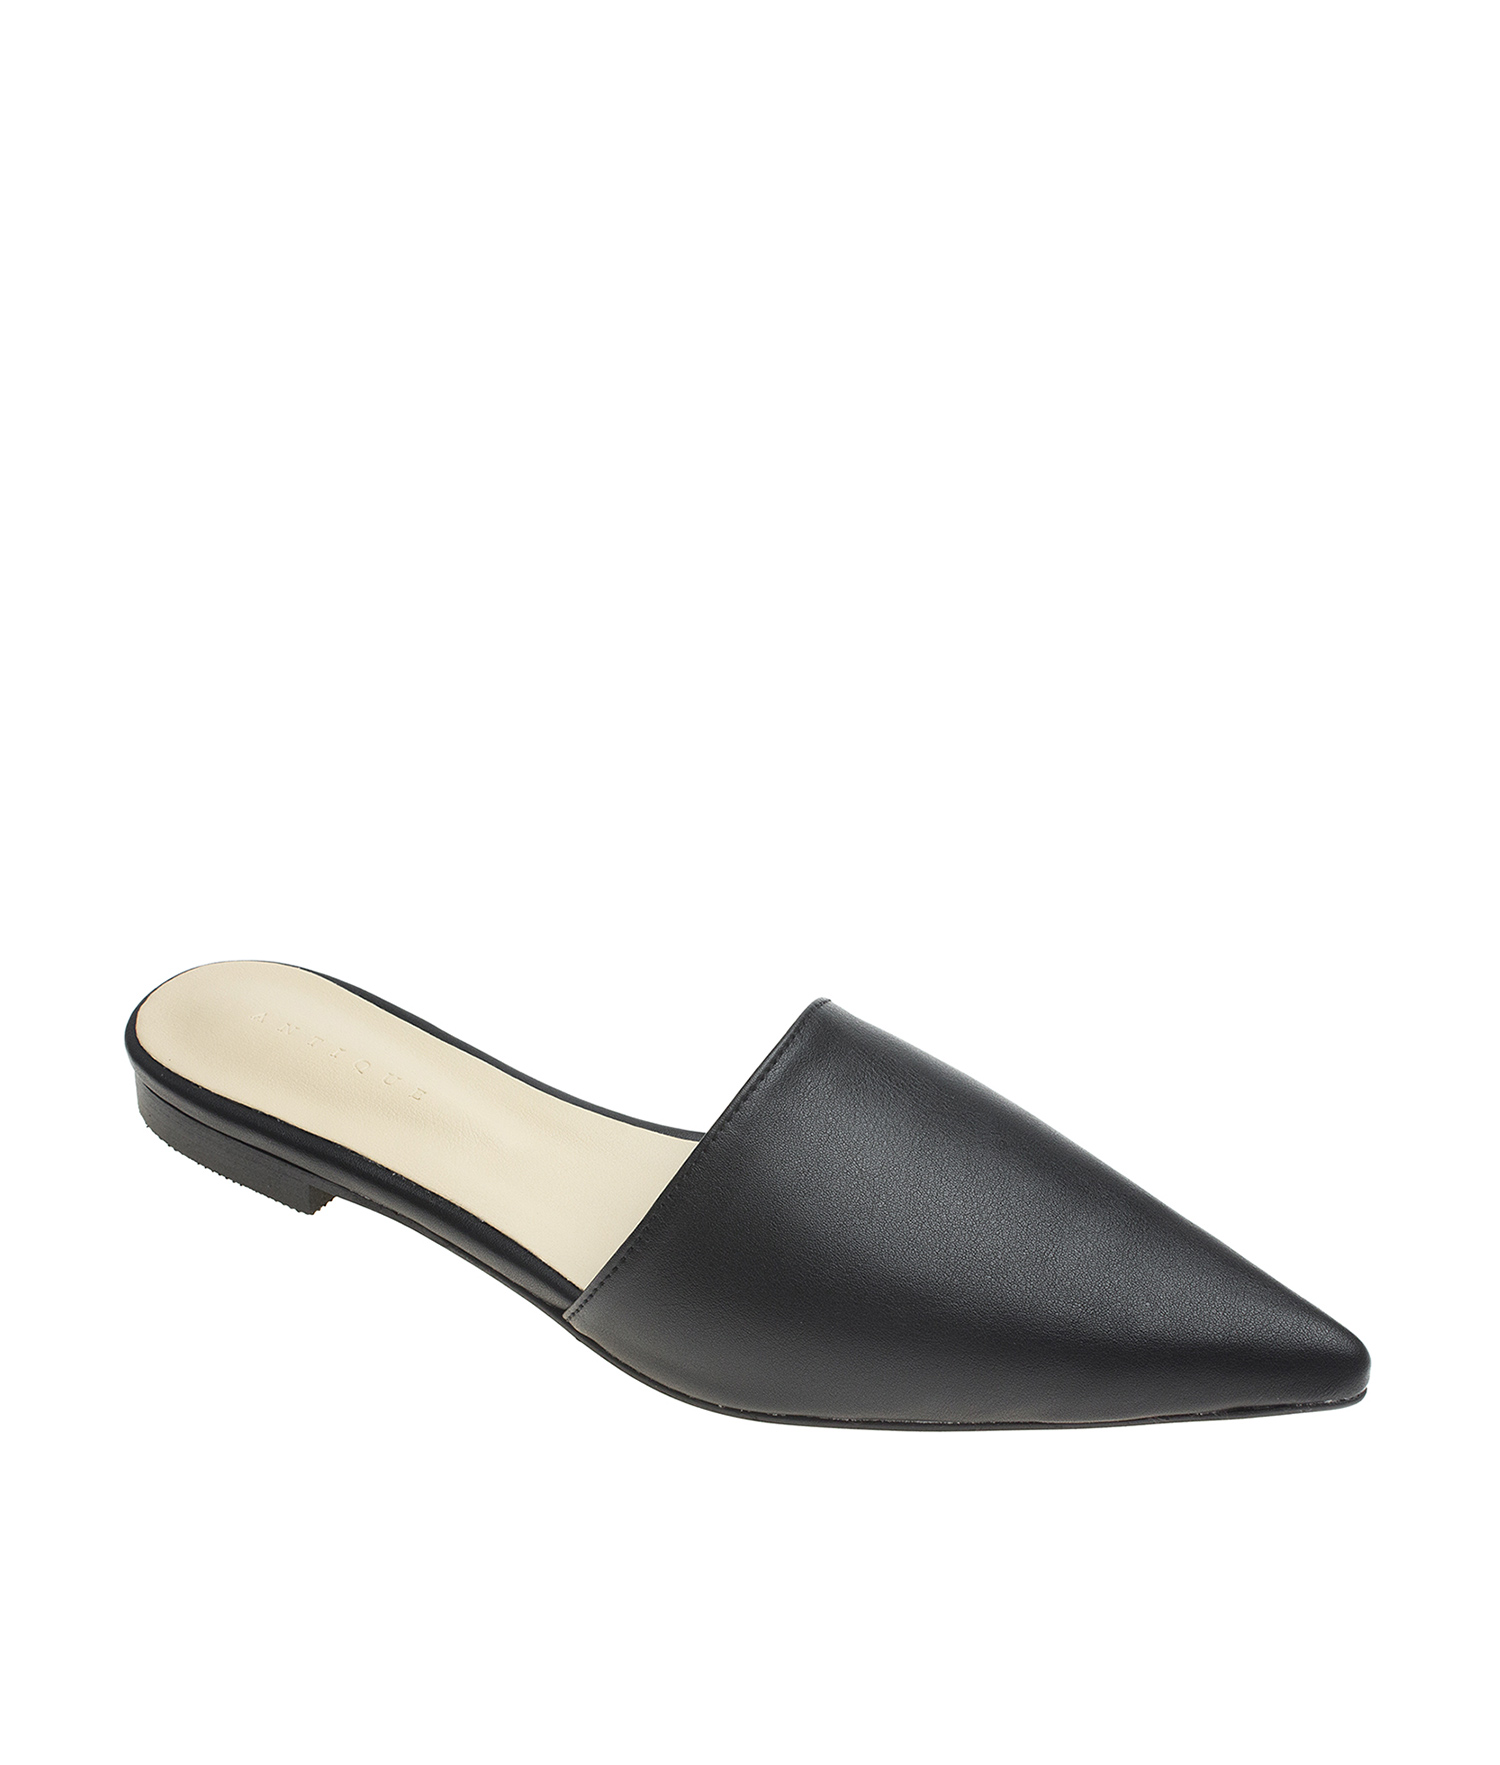 AnnaKastle Womens Sleek Pointed Toe Mule Flats Black